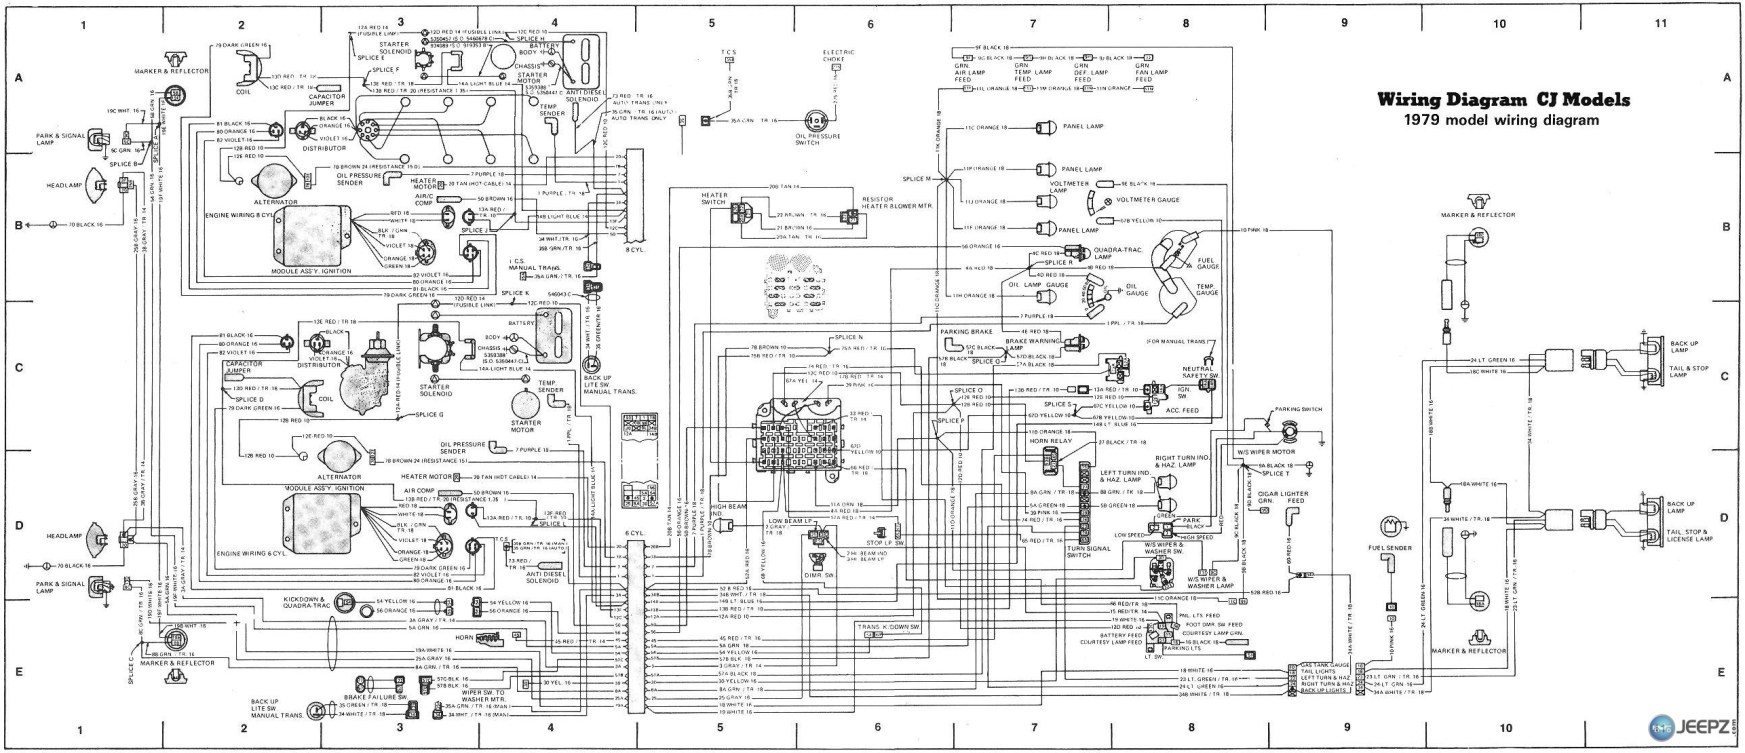 cj wiring diagram wiring diagram ignition wiring diagram for 1985 jeep cj7 image